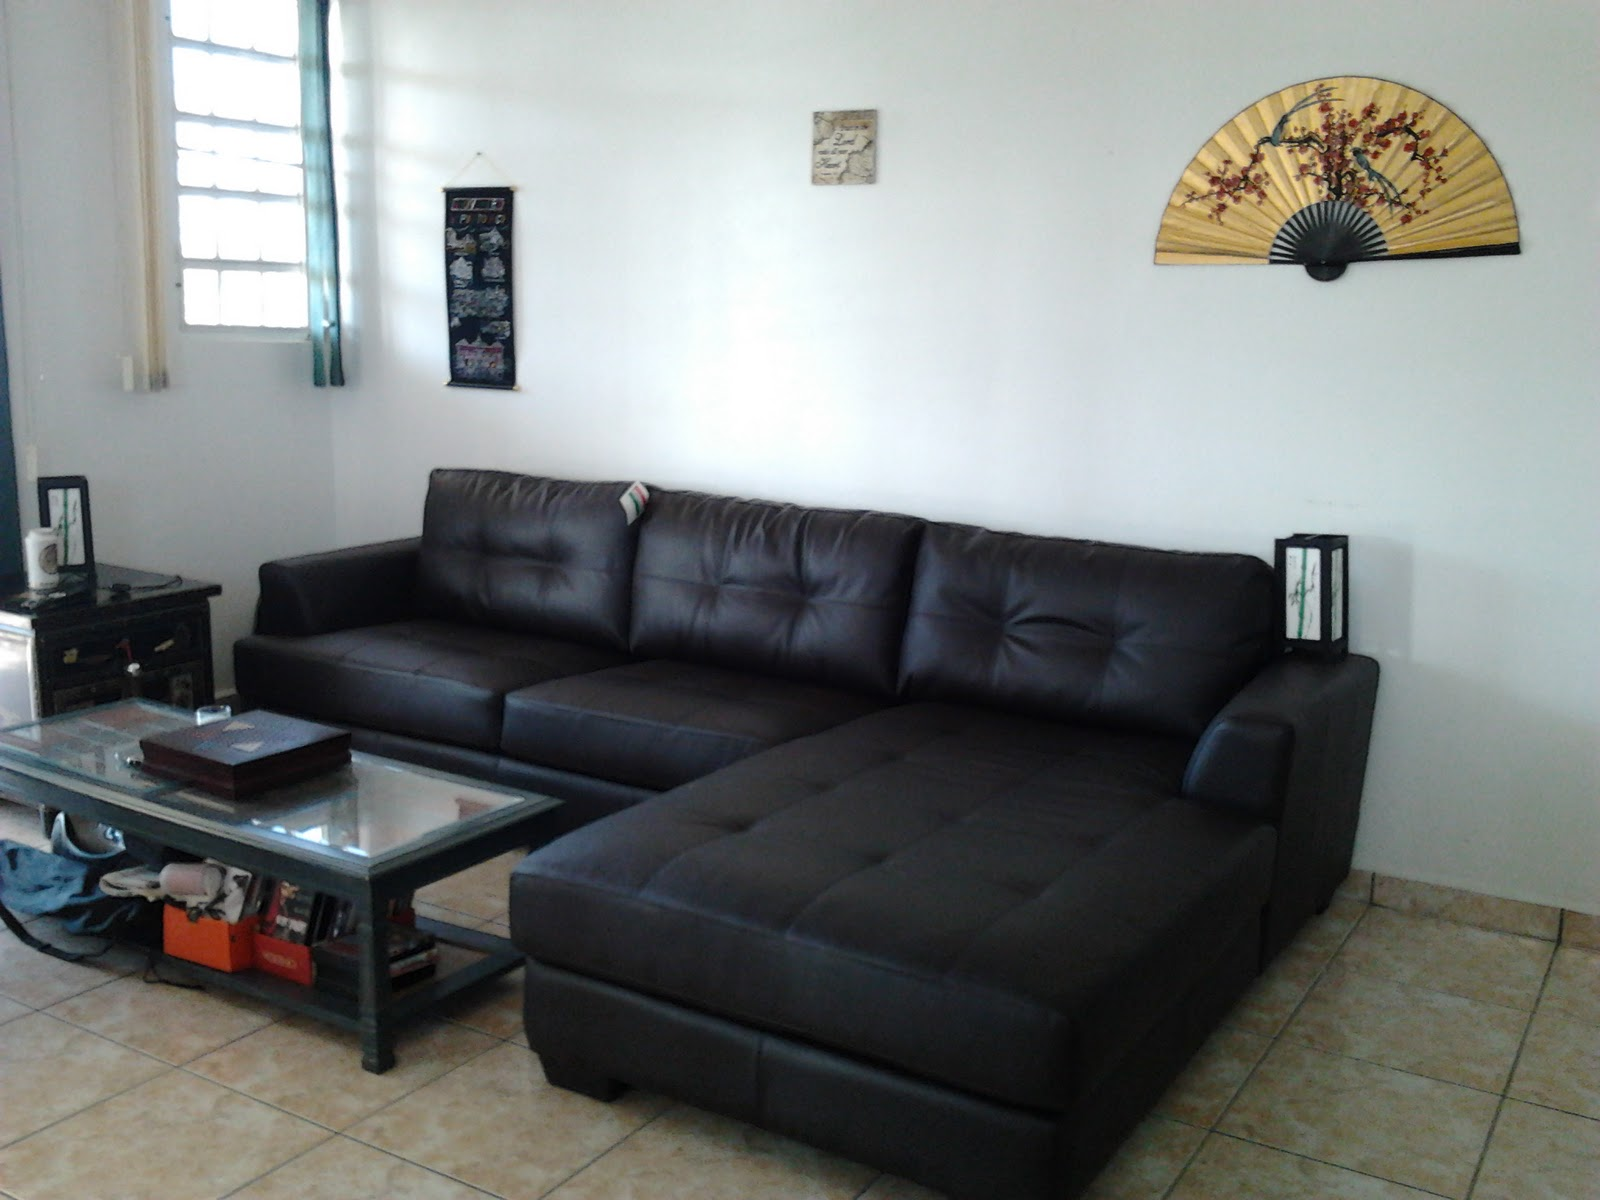 Pitusa Furniture Puerto Rico Related Keywords & Suggestions